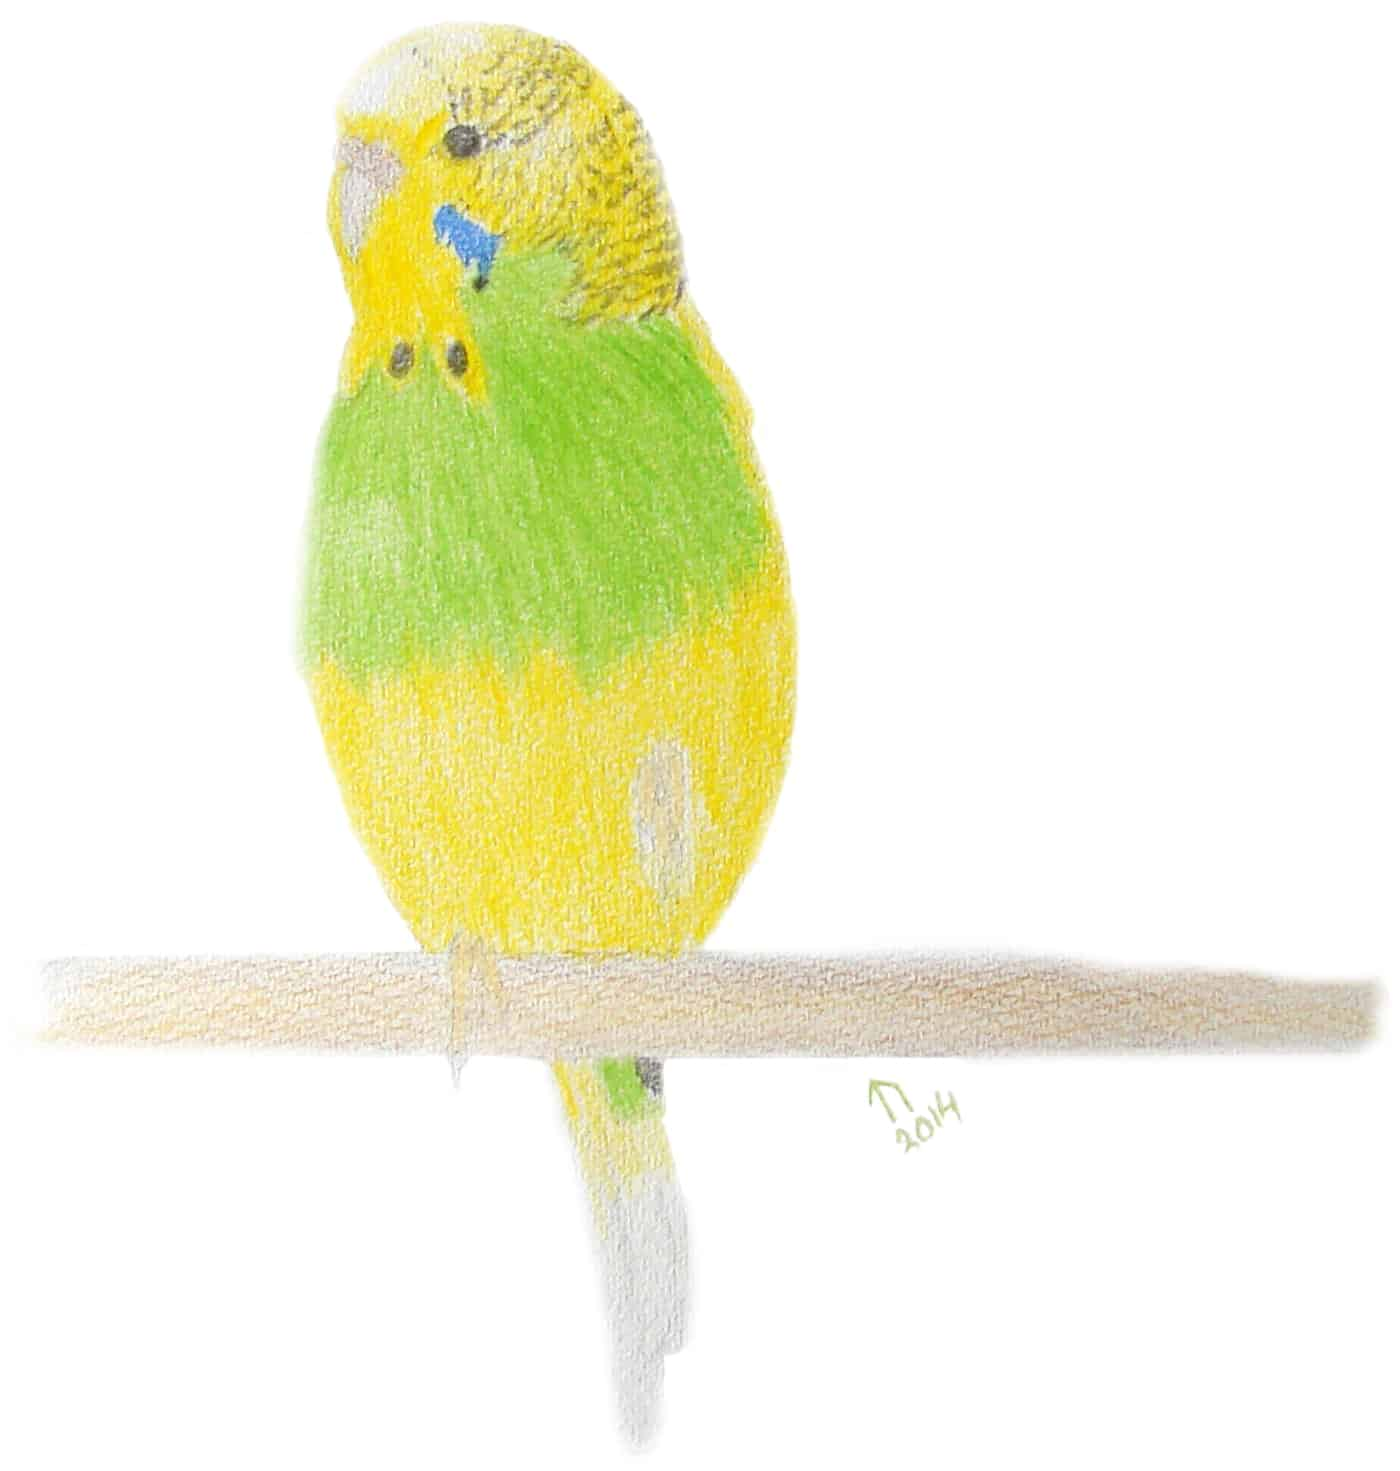 Tia, another budgie